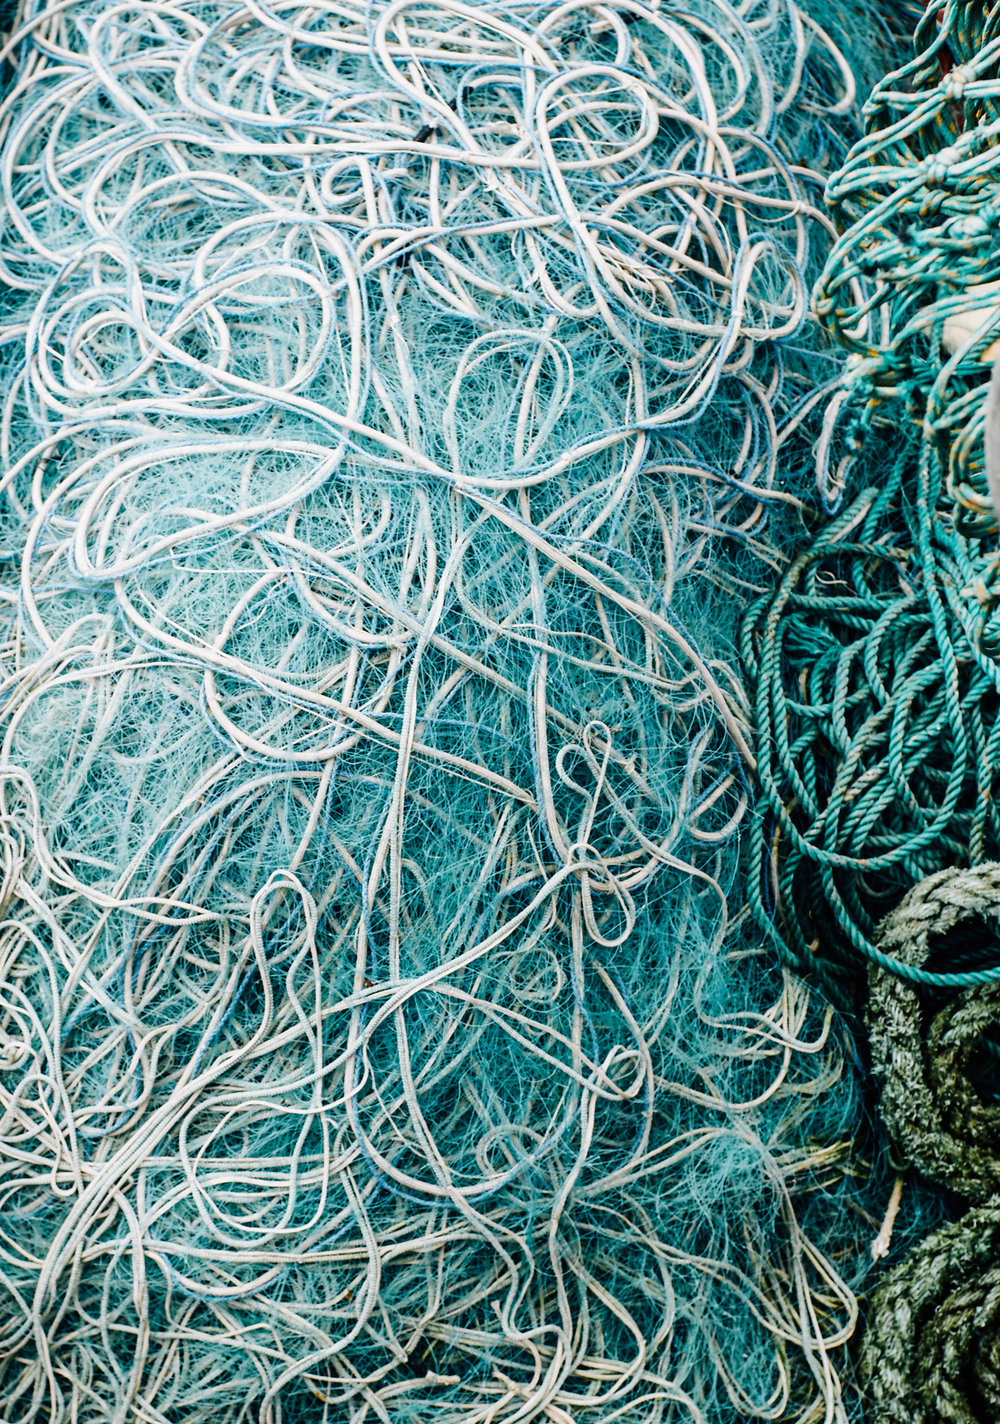 Fishing nets Roundstone Ireland Toronto Travel Photographers - Suech and Beck